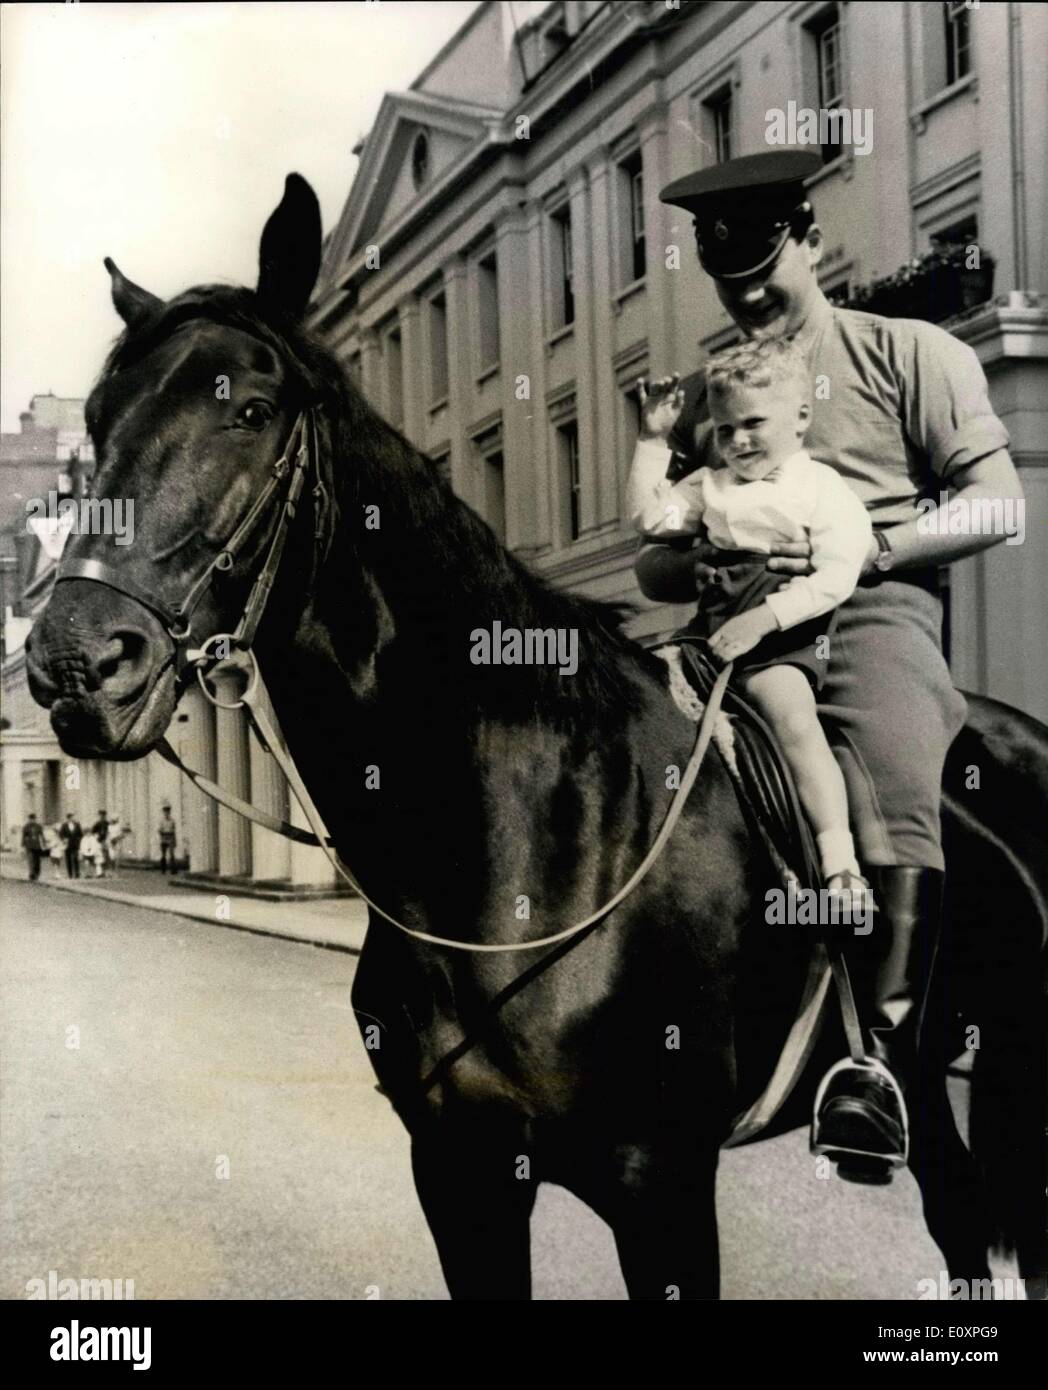 Jul. 24, 1967 - Boy Is Guest Of The Household Cavalry: Four-year-old David Rayne, who was injured in an accident at the close of the Trooping the Colour ceremony inviting a horse belonging to the Foot Guards, on 10th. June, was today the VIP guest of honour of the Household Cavalry Regiment, with whom the horse was in no way connected - at Wellington Barracks, because they decided it would be a good idea to introduce him to the horses so that he would not be afraid of them - Stock Image